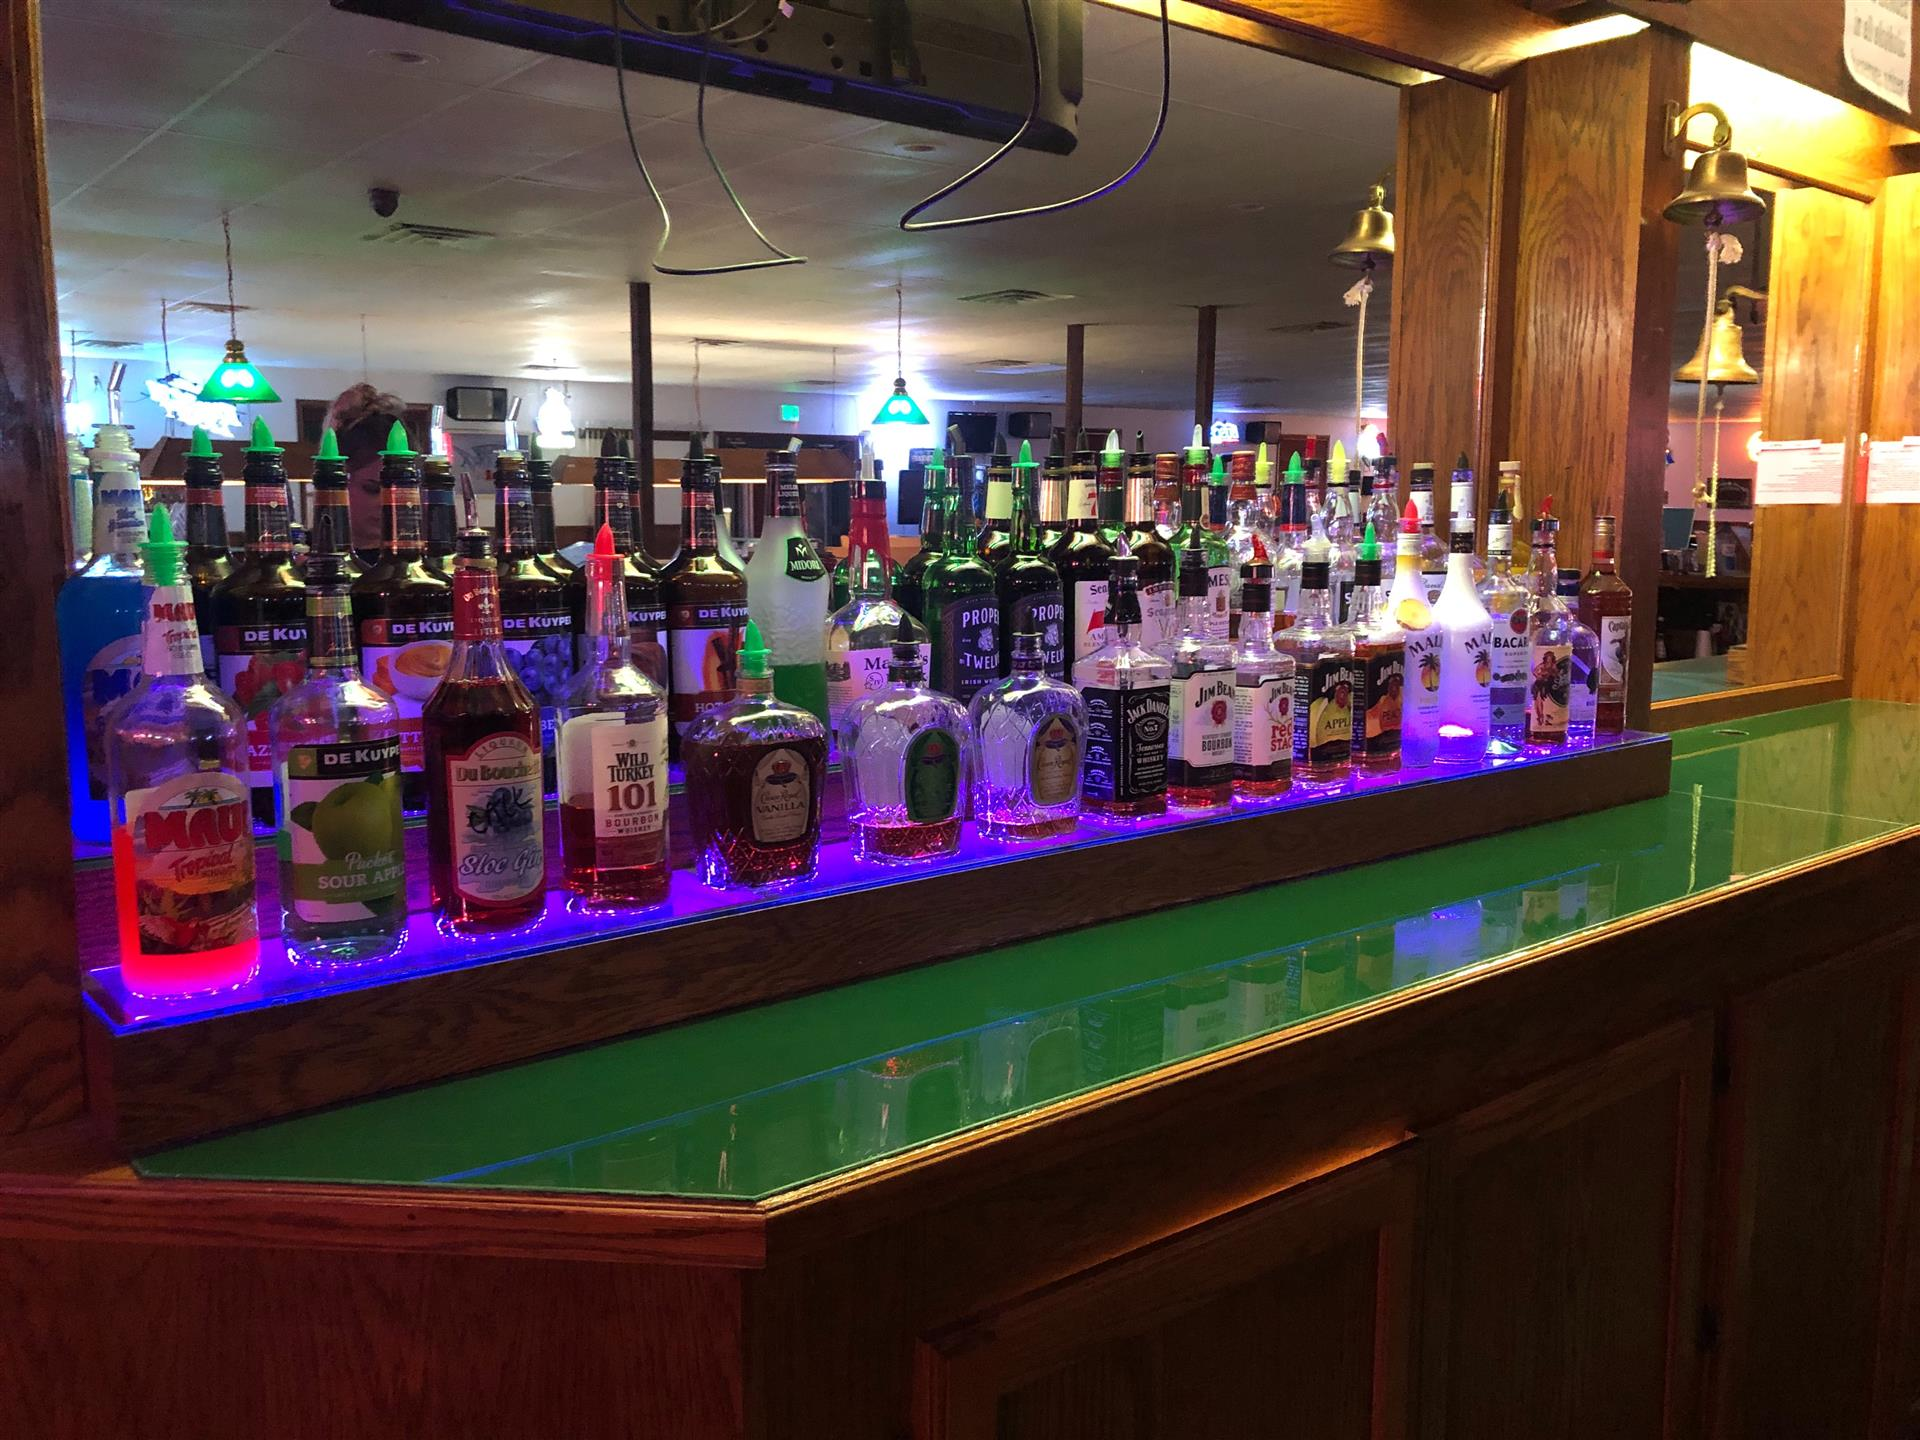 bar with various alcoholic drinks